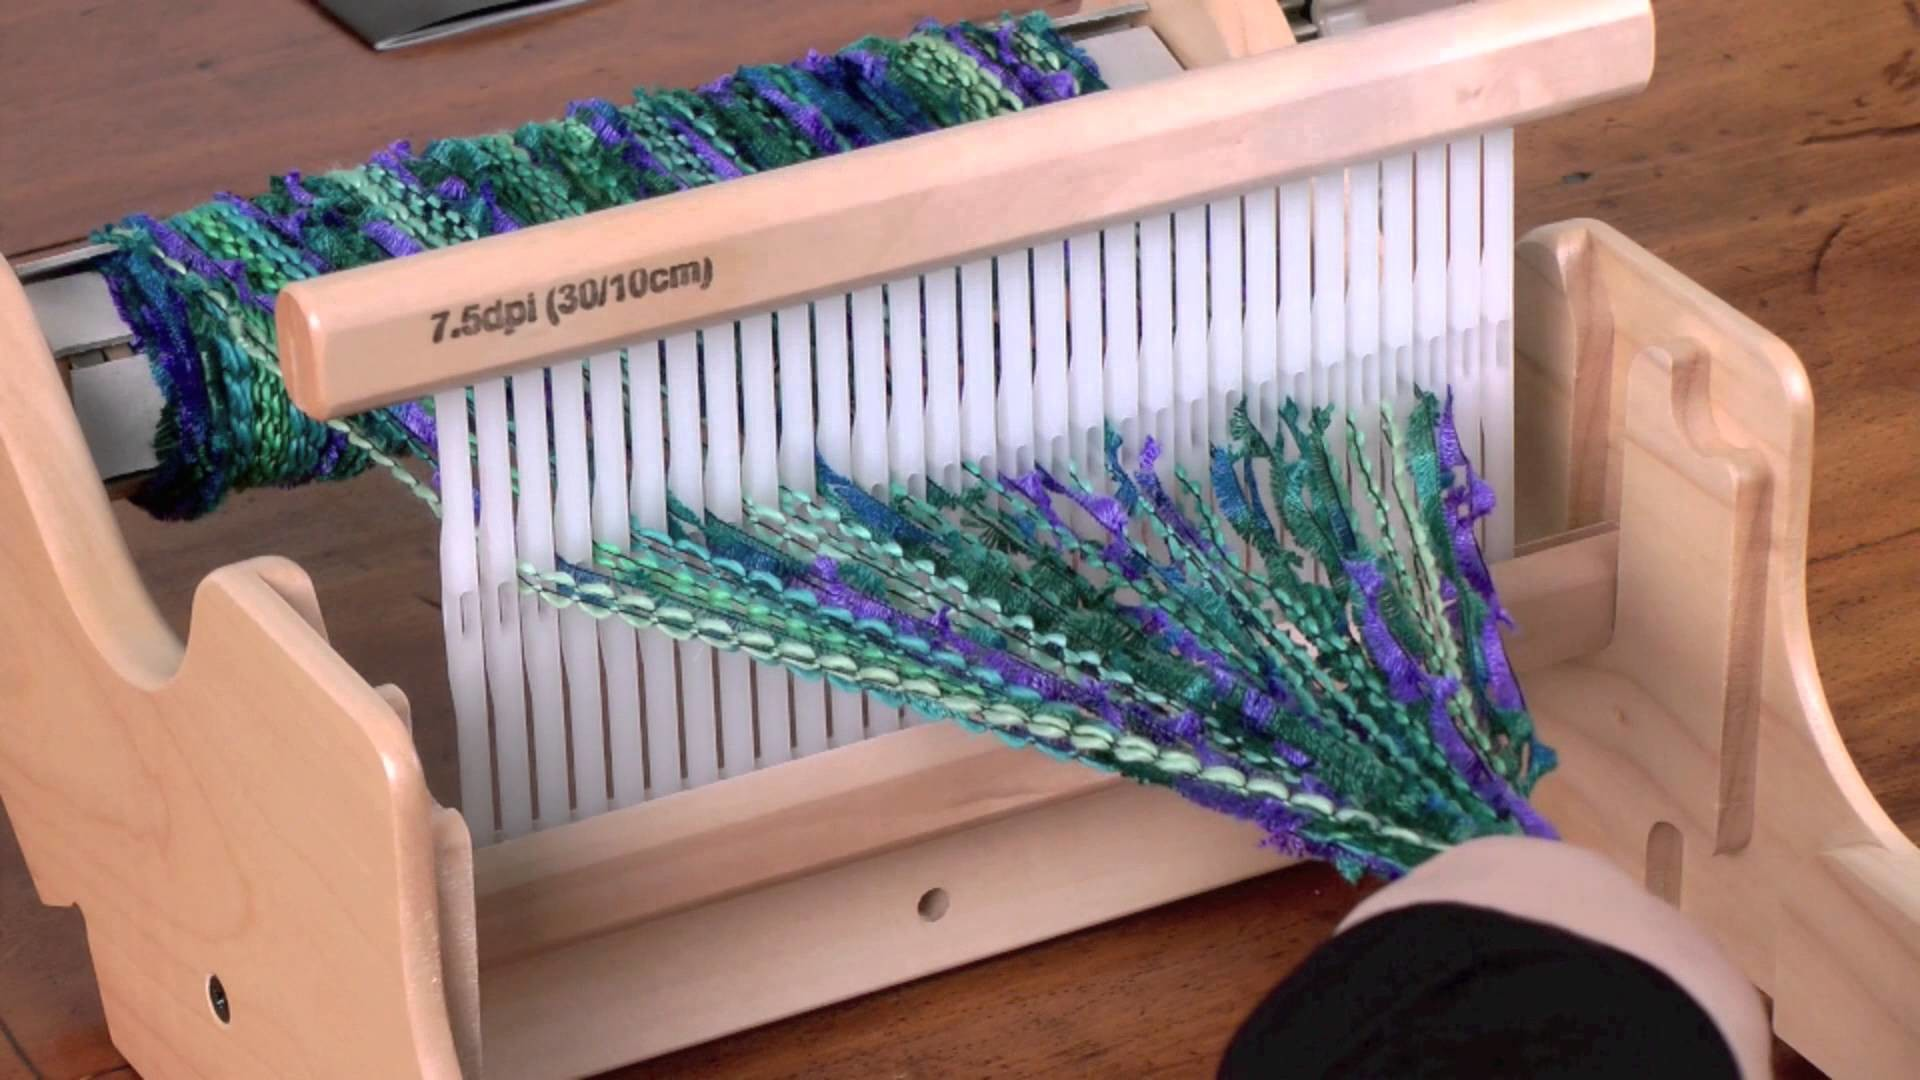 Weaving on the SampleIt Loom